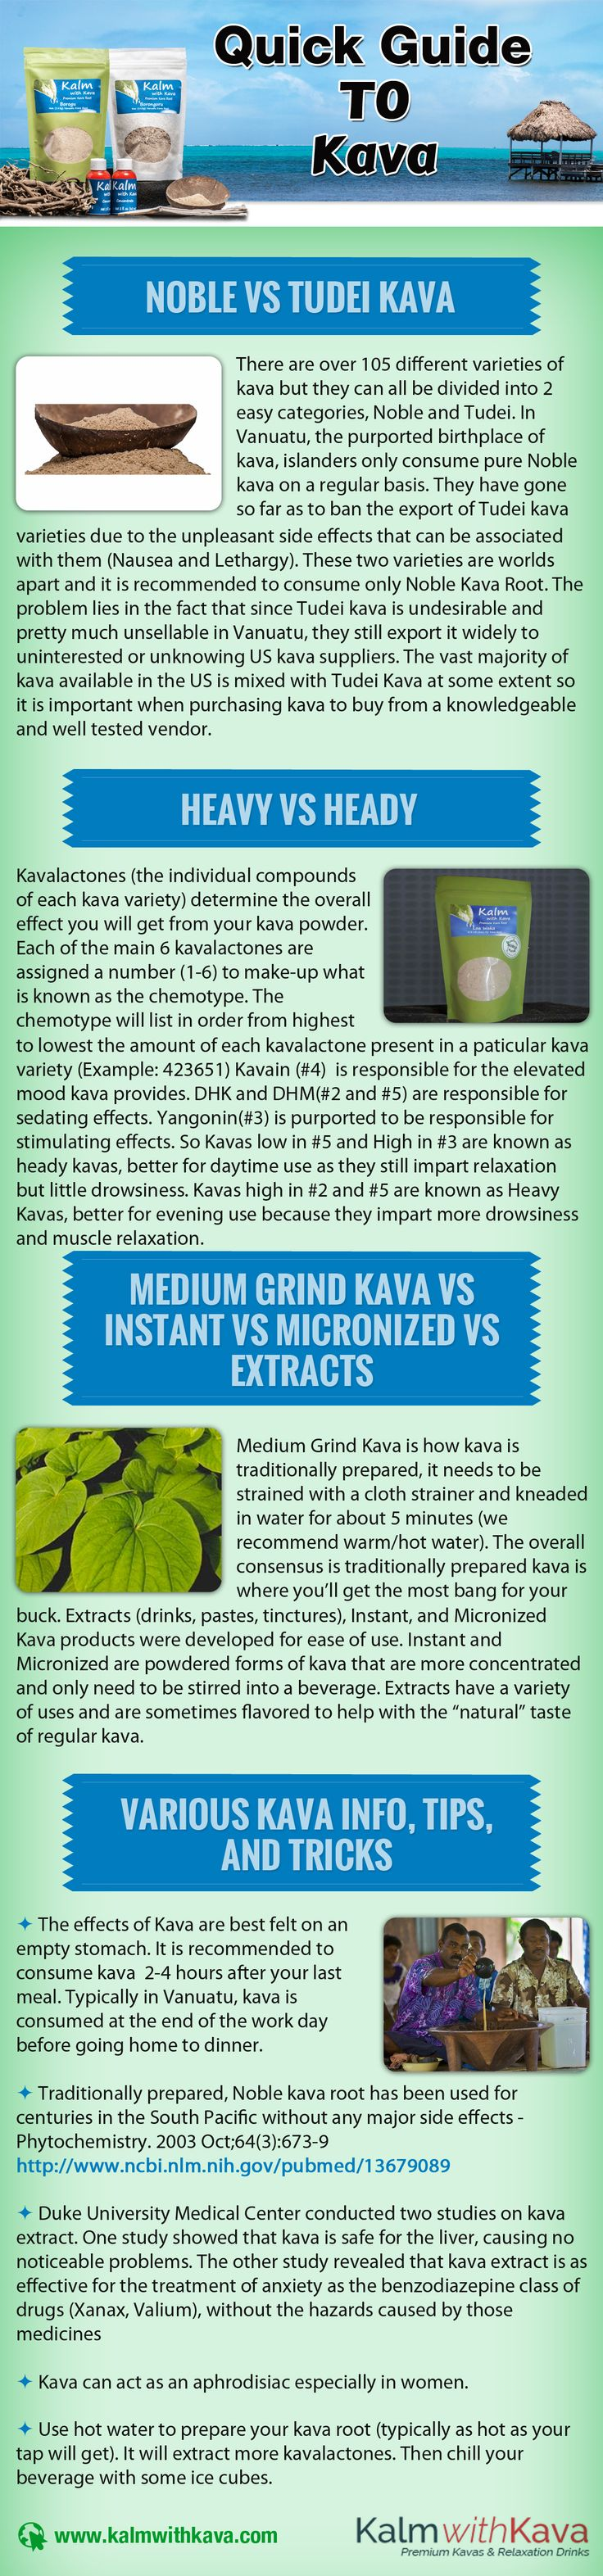 Your Quick Guide to #Kava_drinks